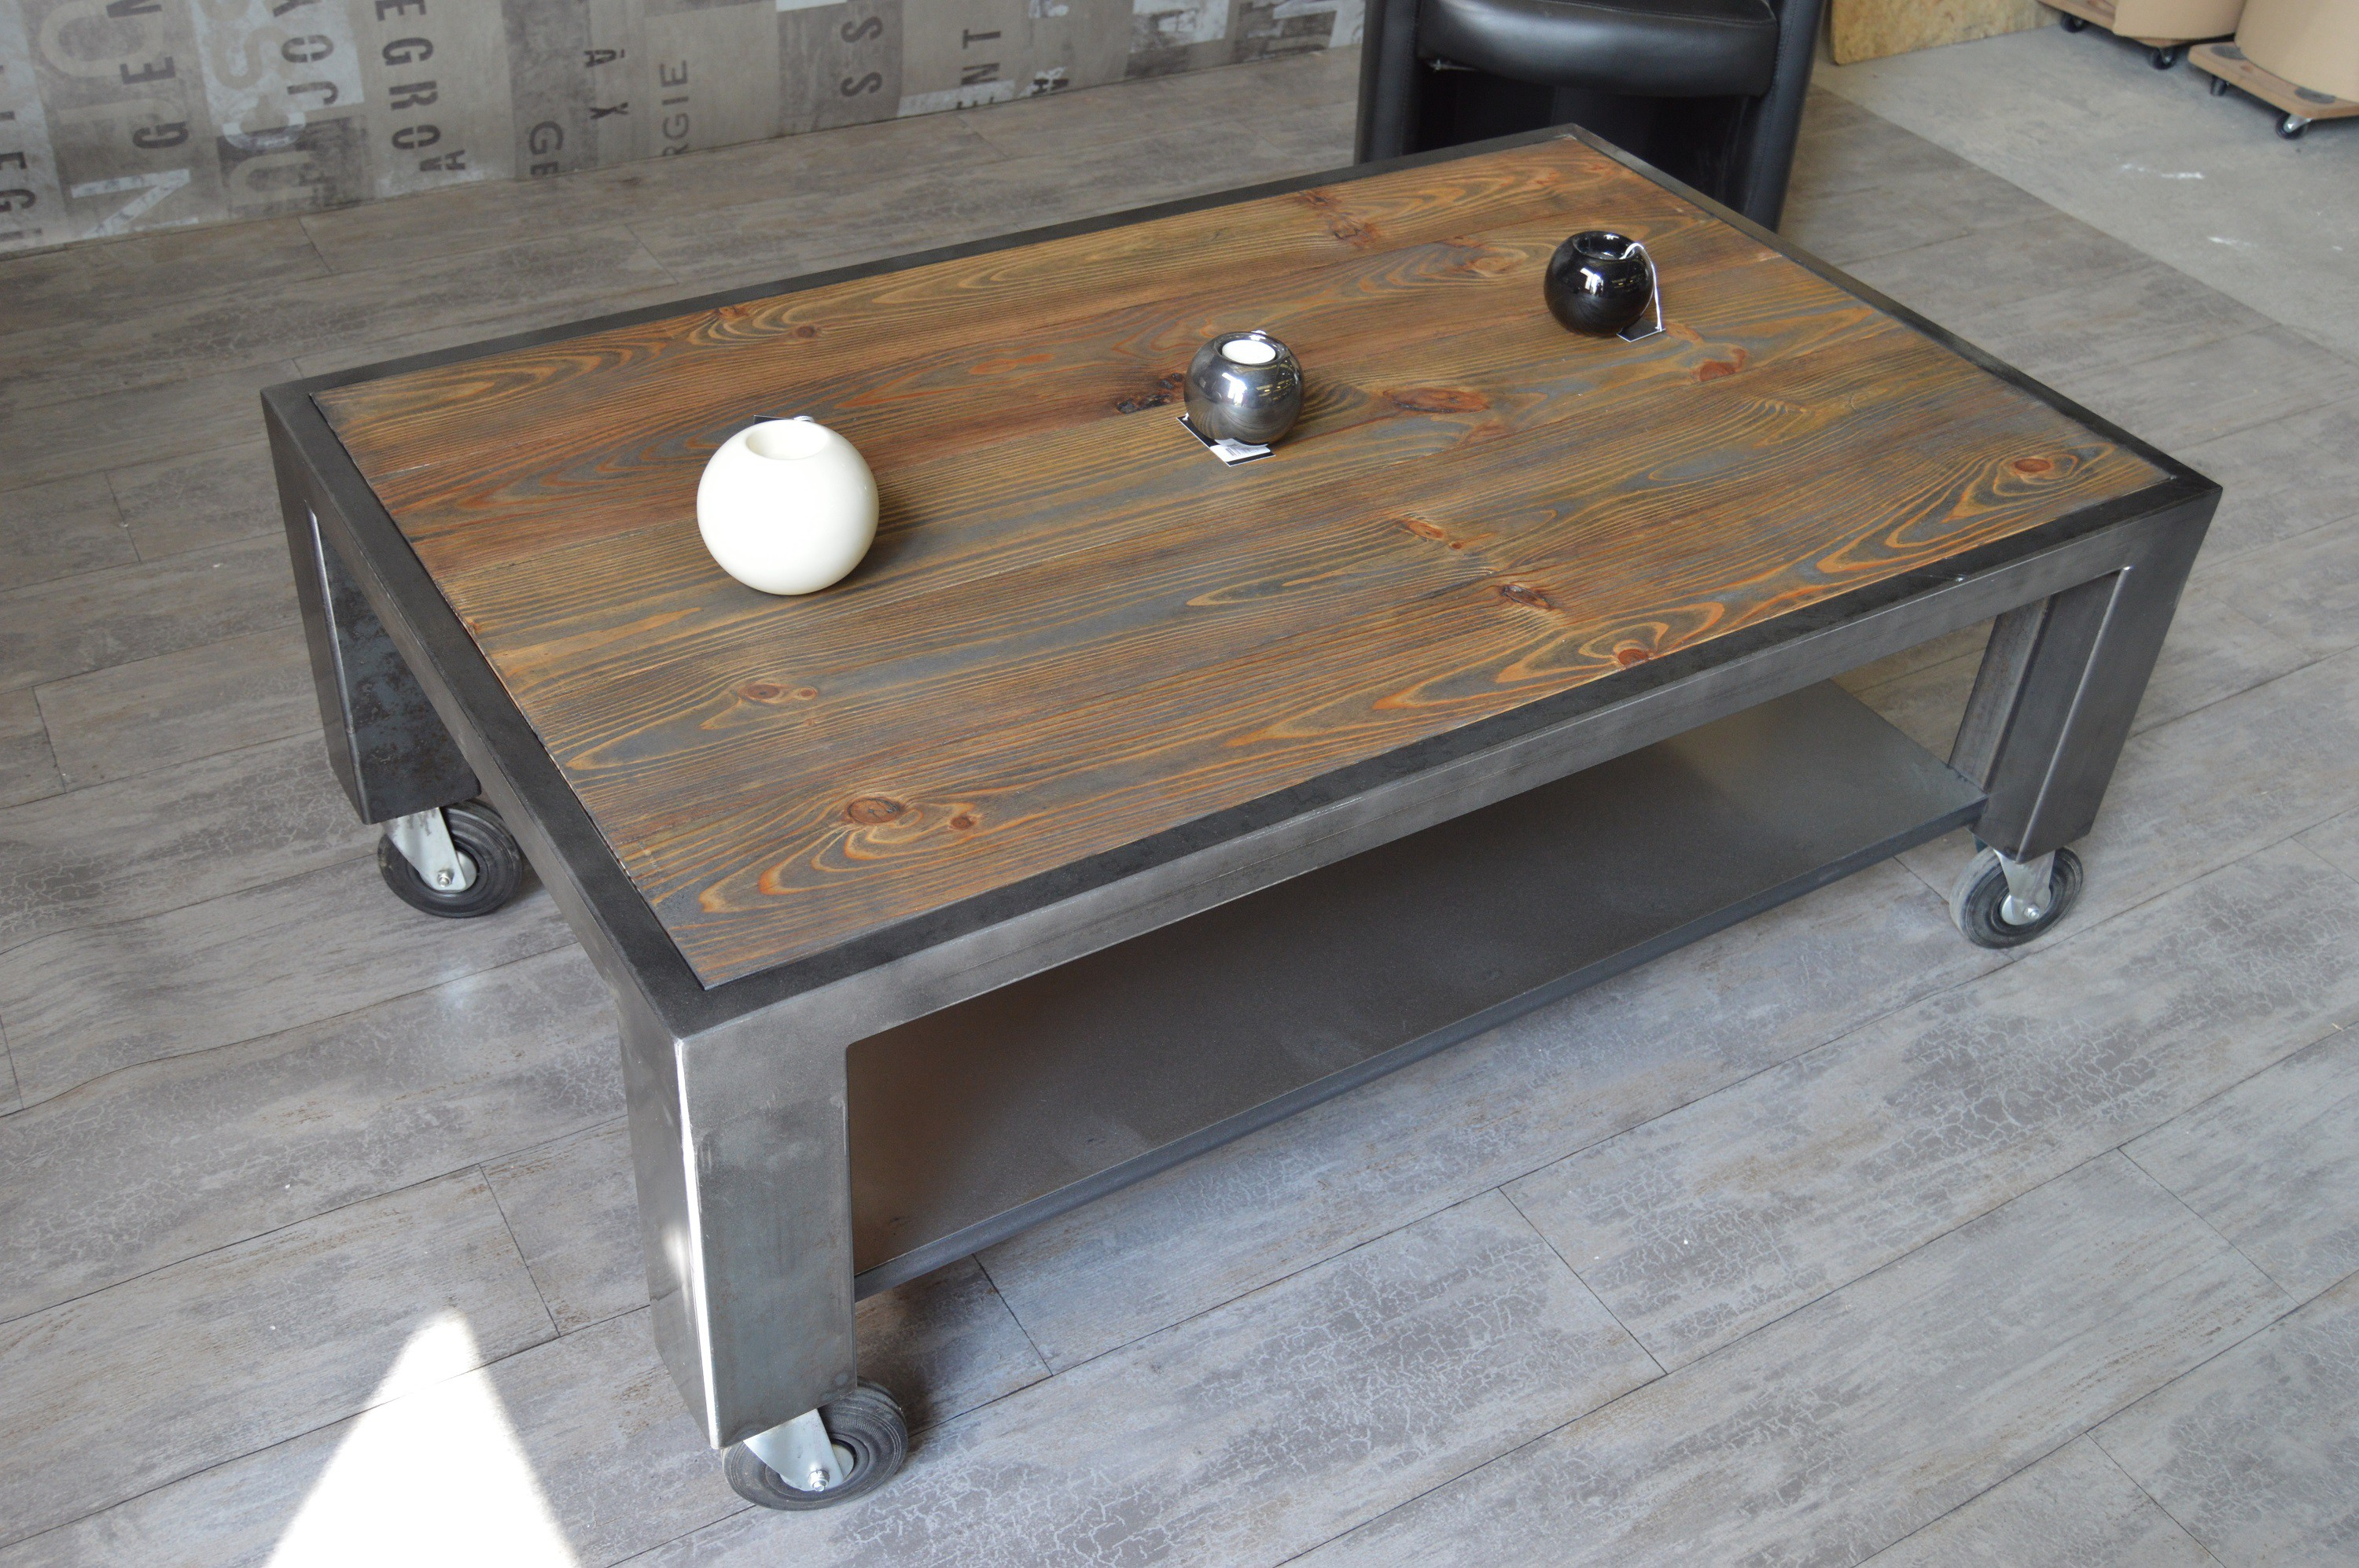 Table de salon style industriel - Table de salon industriel ...